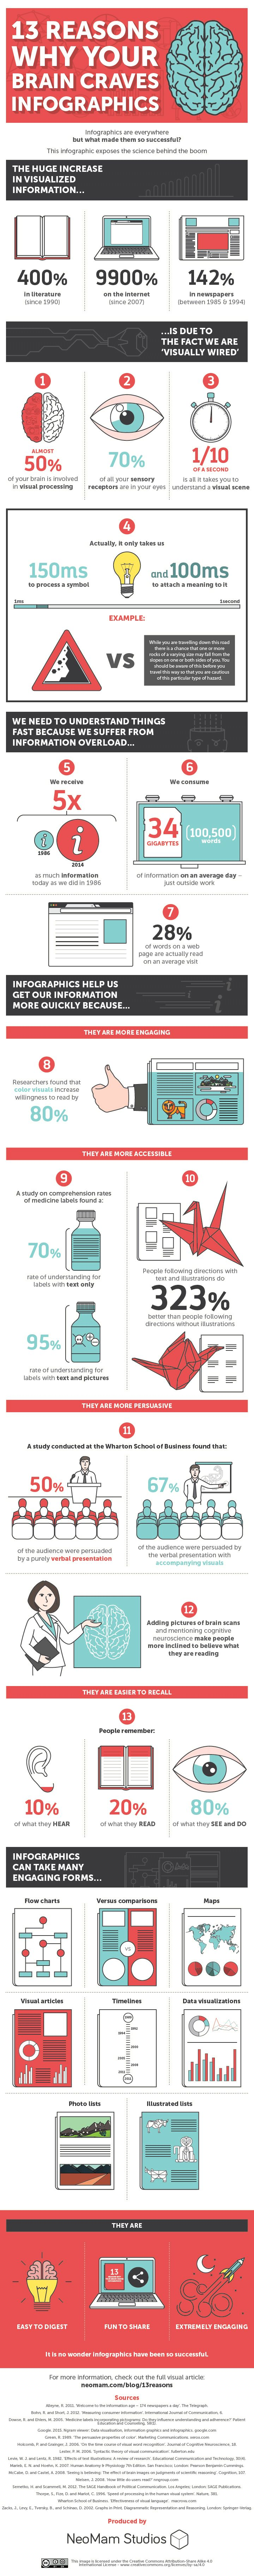 Infographic: 13 Reasons Why Your Brain Craves Infographics   Adweek